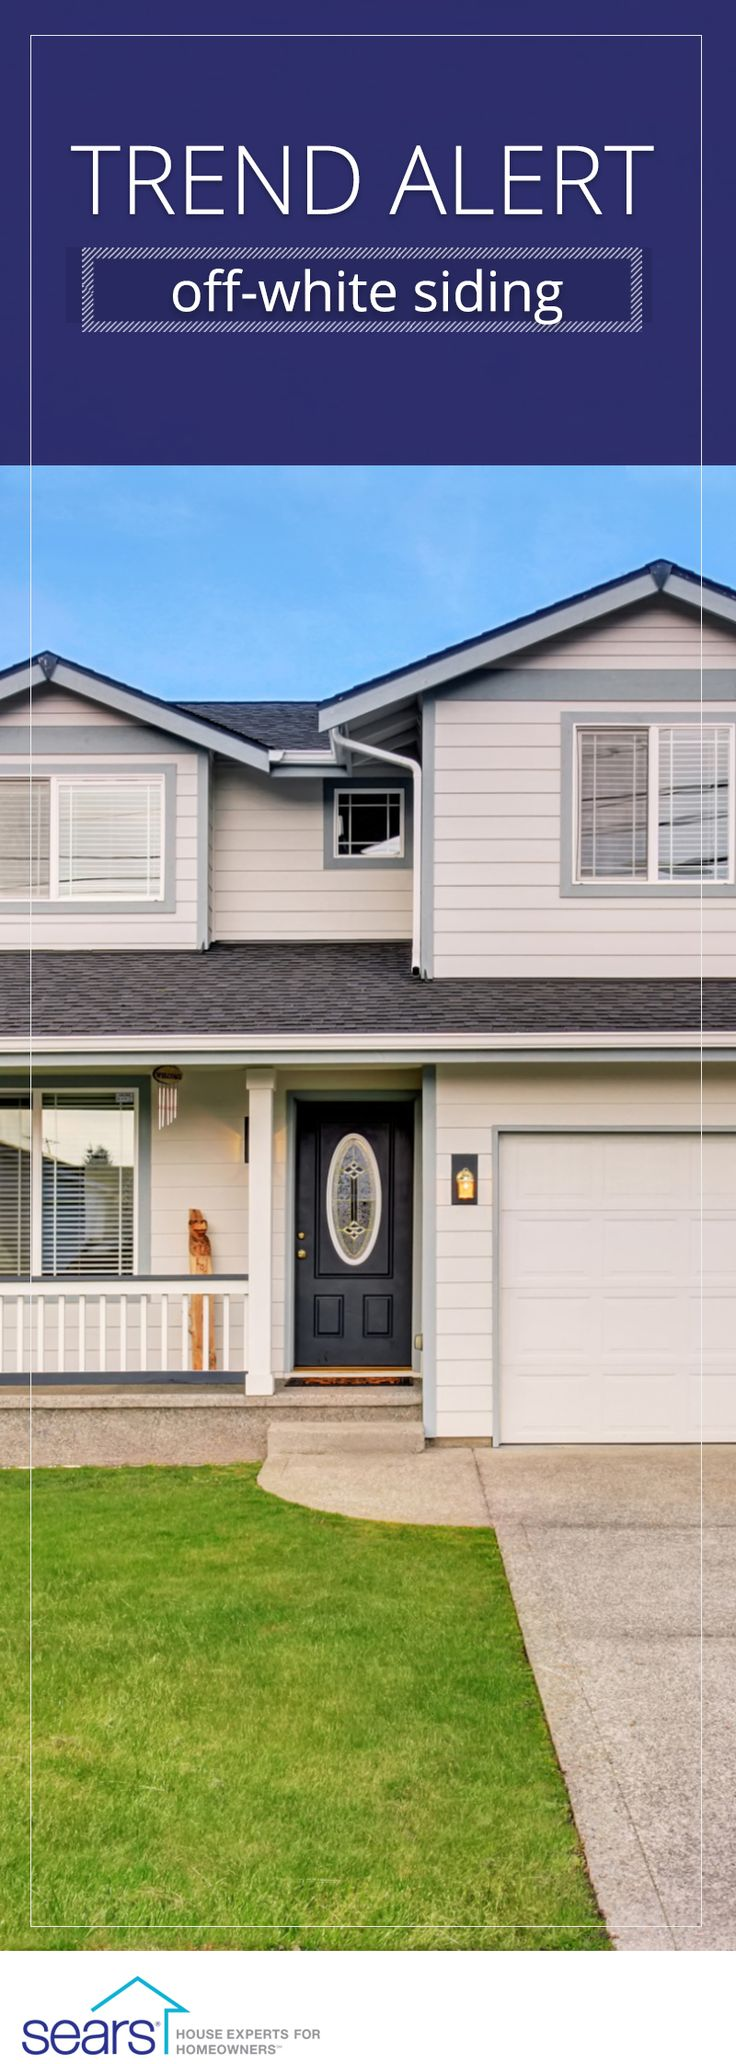 Vinyl siding repair tape - How To Choose New Vinyl Siding 6 Questions To Ask Give Your Home A